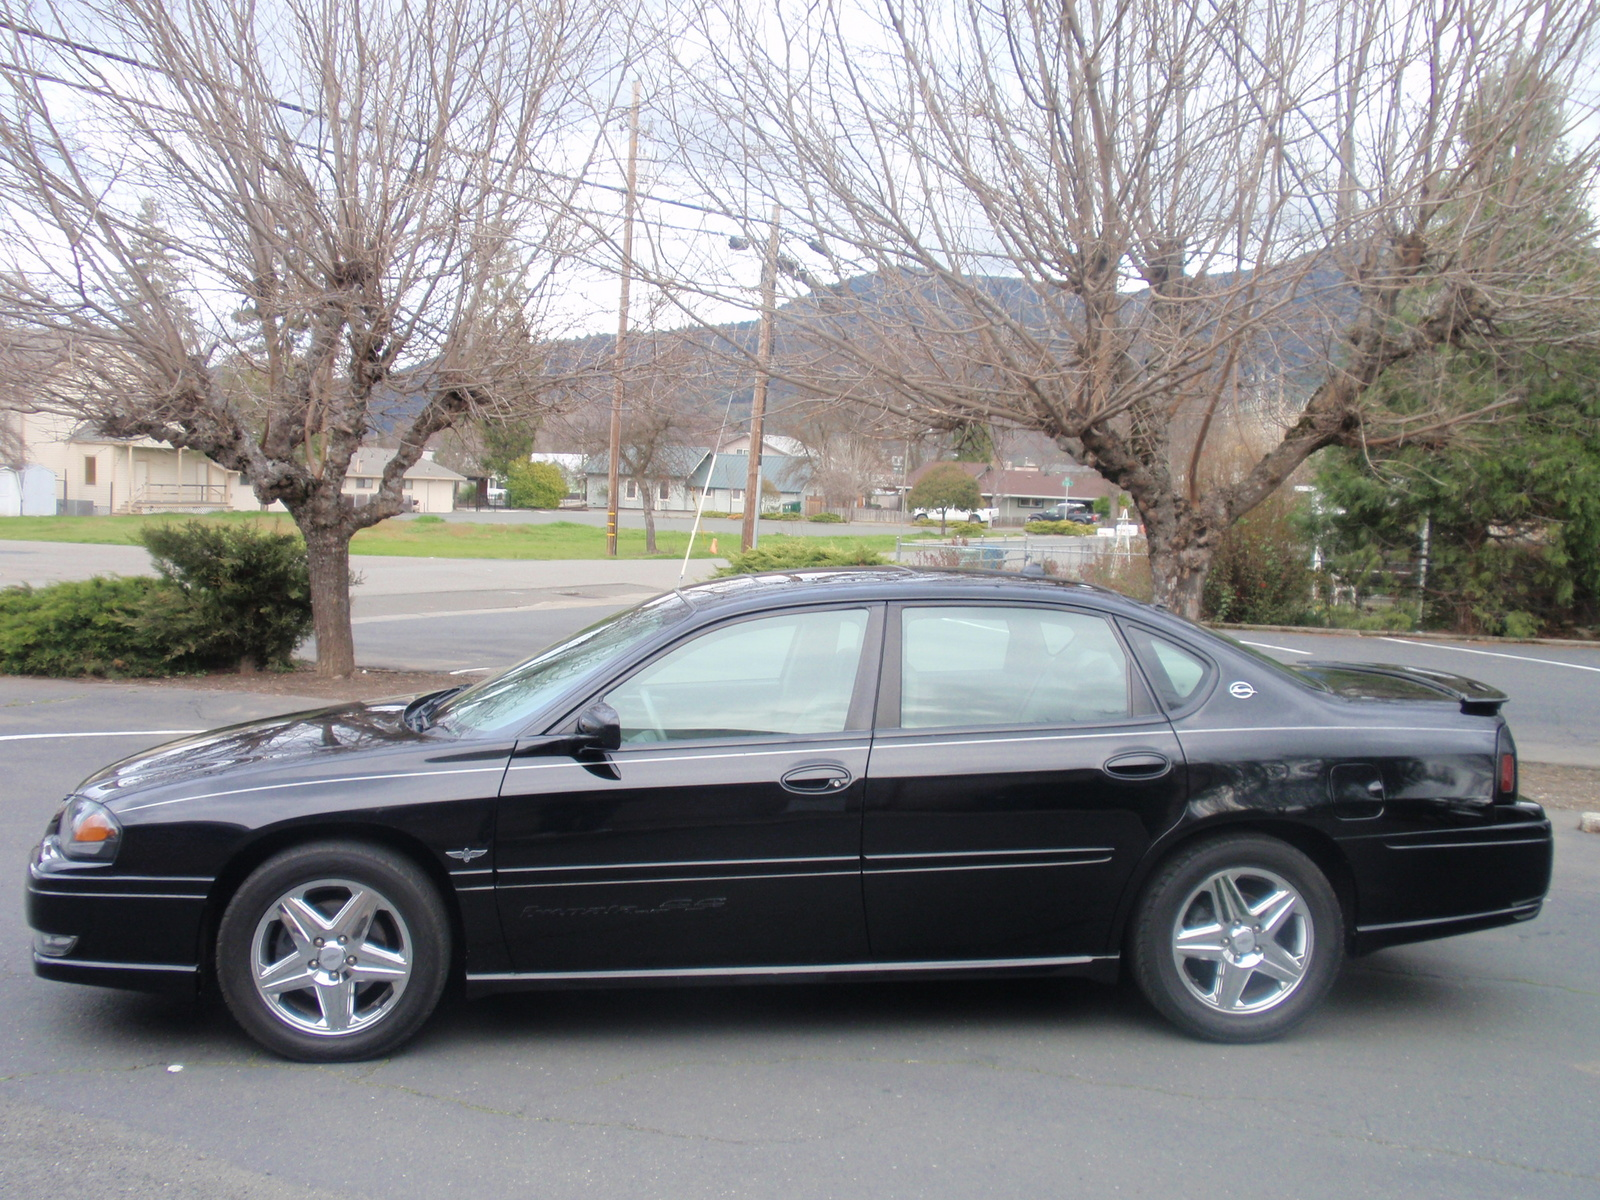 2005 Chevrolet Malibu Pictures C779 pi36314947 moreover 2011 Chevrolet Camaro 2SS Pictures T37273 together with 2004 Chevrolet Impala Pictures C803 pi35970485 additionally 2003 Chevrolet Silverado 1500 Pictures C829 pi36370183 additionally 1211mt Construction Zone 2006 Nissan Pathfinder. on 2000 chevrolet blazer interior